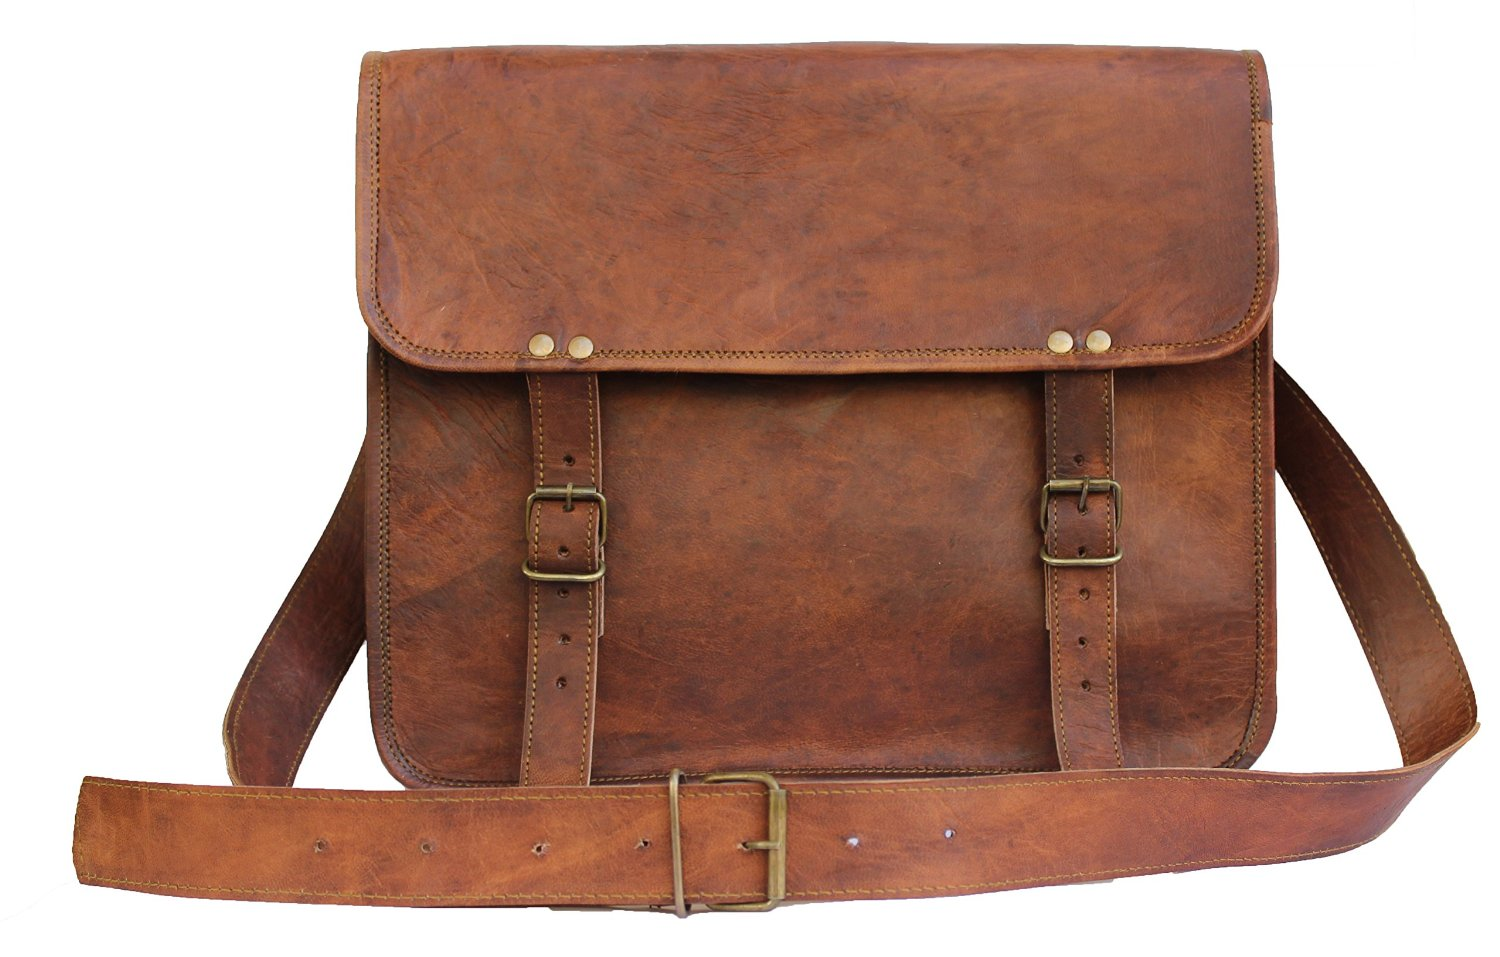 United Leather Bags 14'' Inches Classic Adult Unisex Cross Shoulder Leather Messenger Laptop Briefcase Bag Satchel Brown